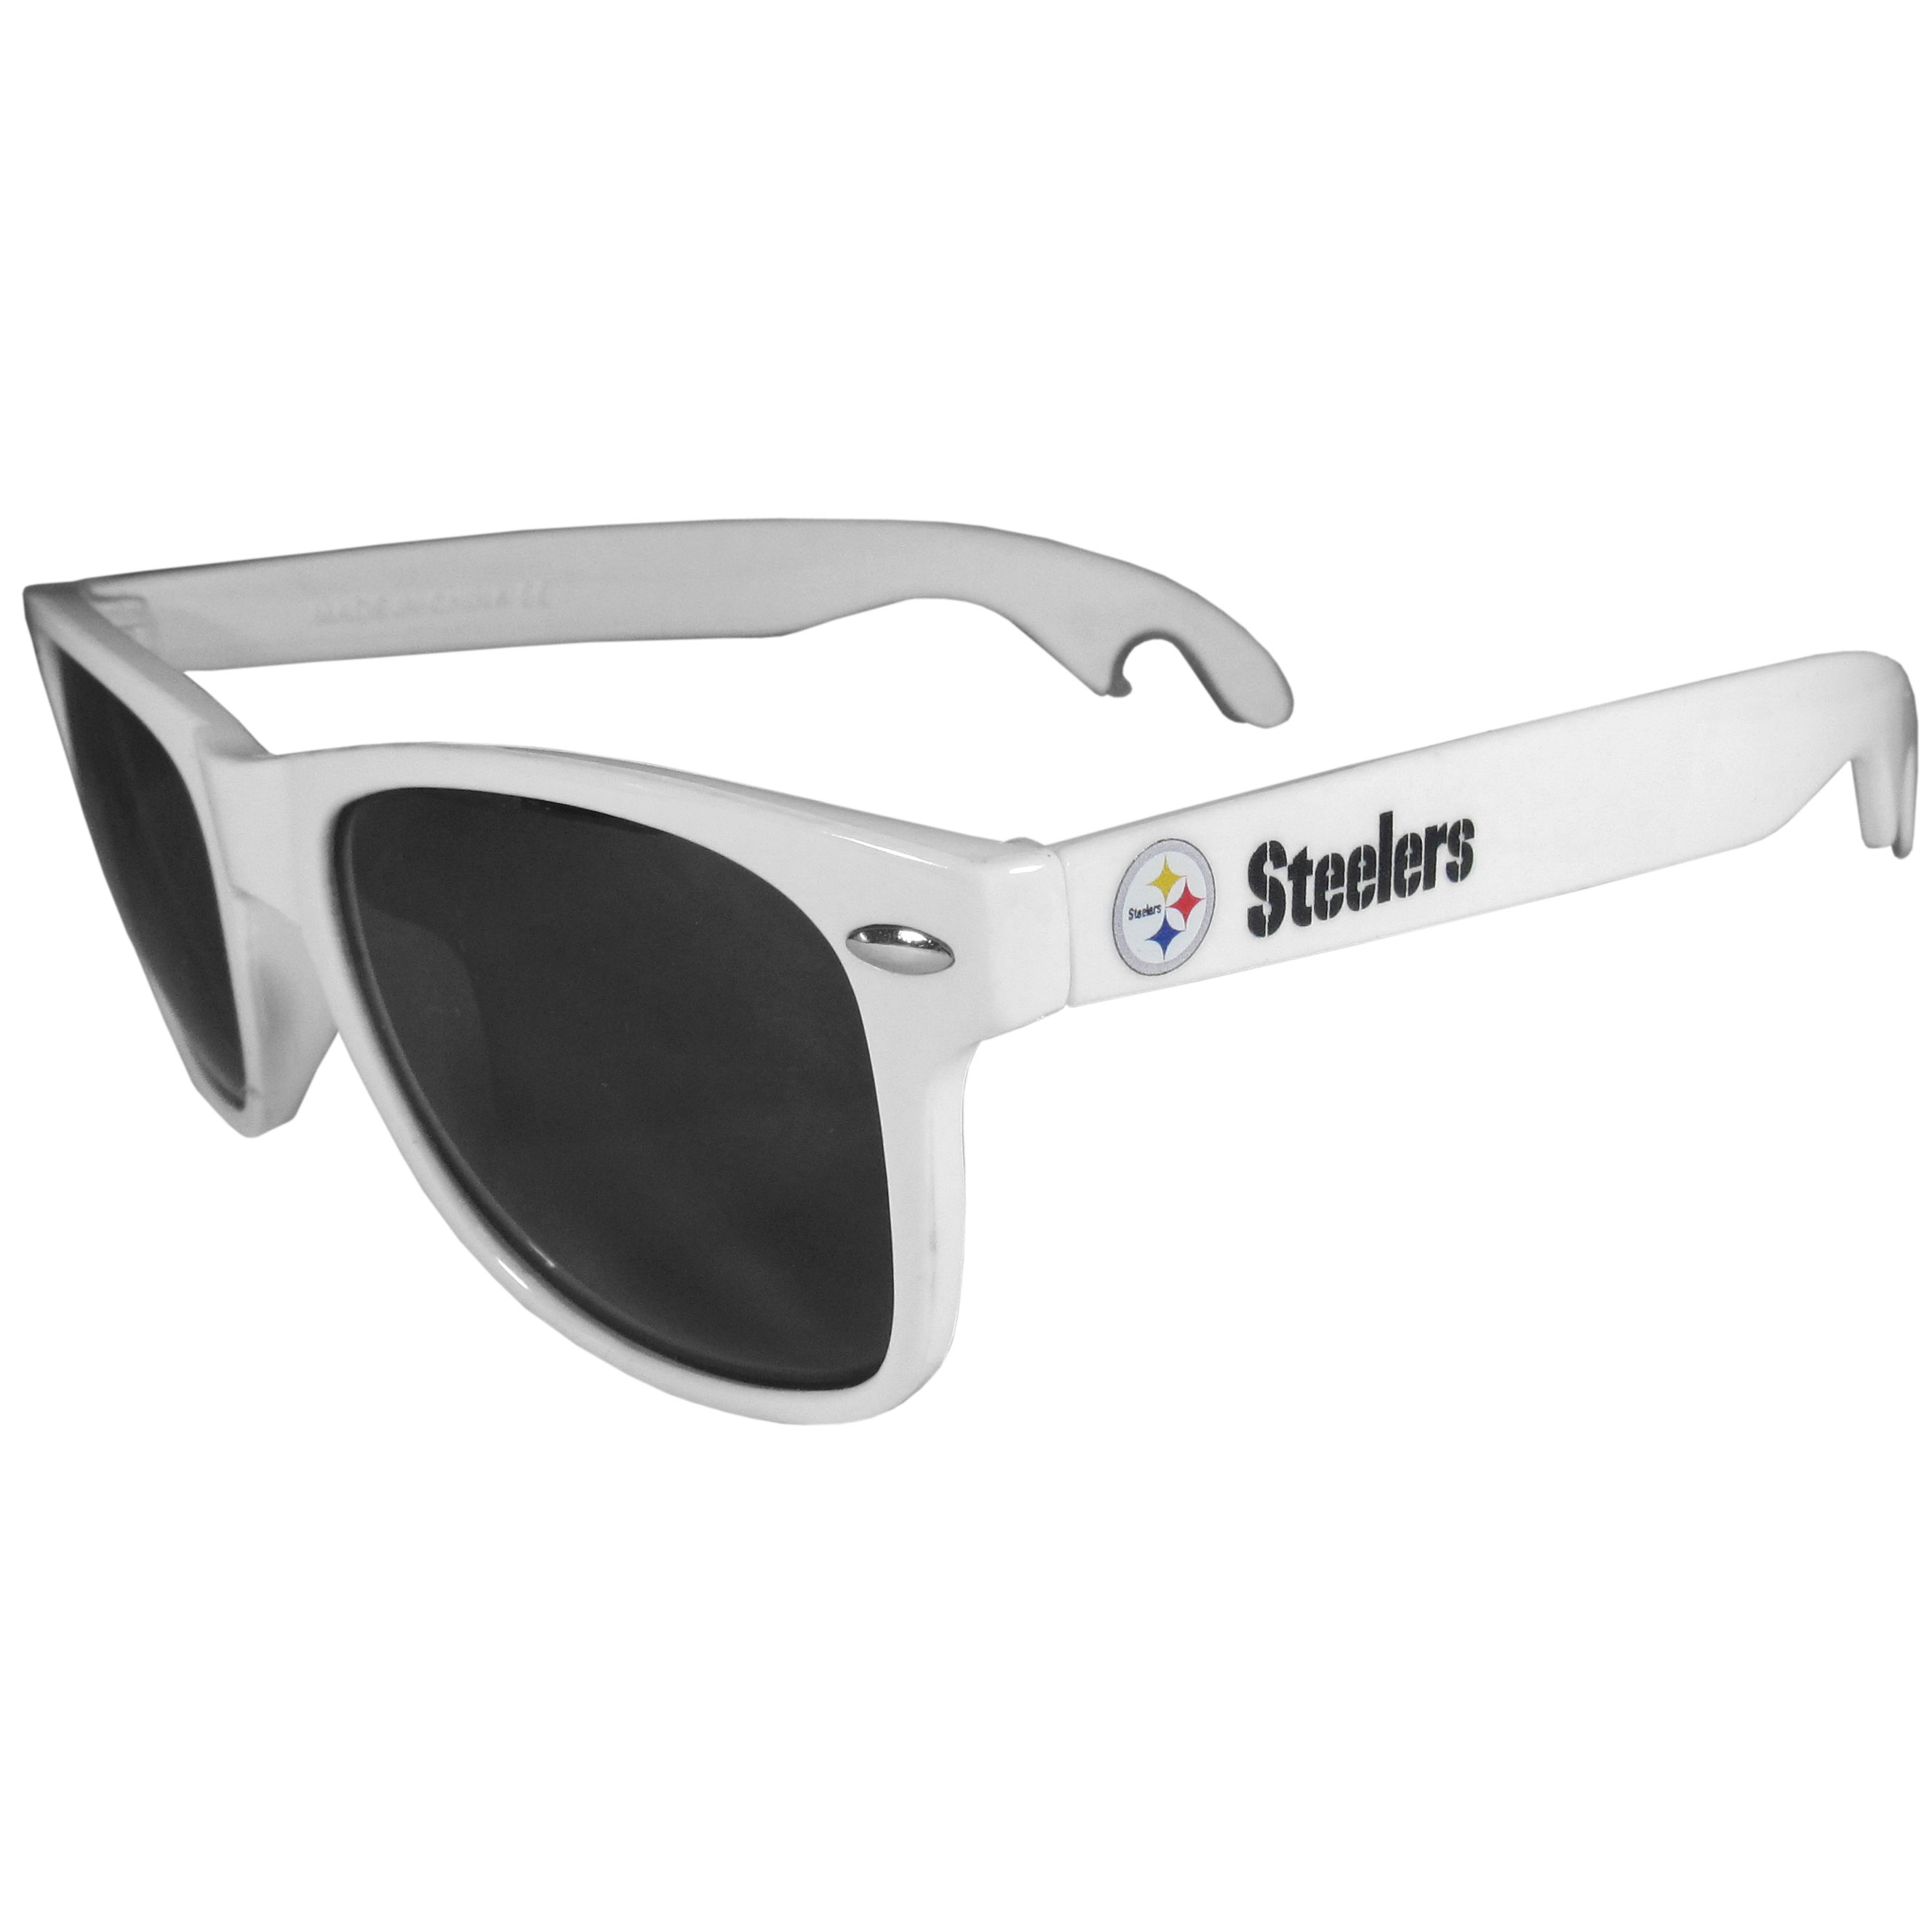 Pittsburgh Steelers Beachfarer Bottle Opener Sunglasses, White - Seriously, these sunglasses open bottles! Keep the party going with these amazing Pittsburgh Steelers bottle opener sunglasses. The stylish retro frames feature team designs on the arms and functional bottle openers on the end of the arms. Whether you are at the beach or having a backyard BBQ on game day, these shades will keep your eyes protected with 100% UVA/UVB protection and keep you hydrated with the handy bottle opener arms.